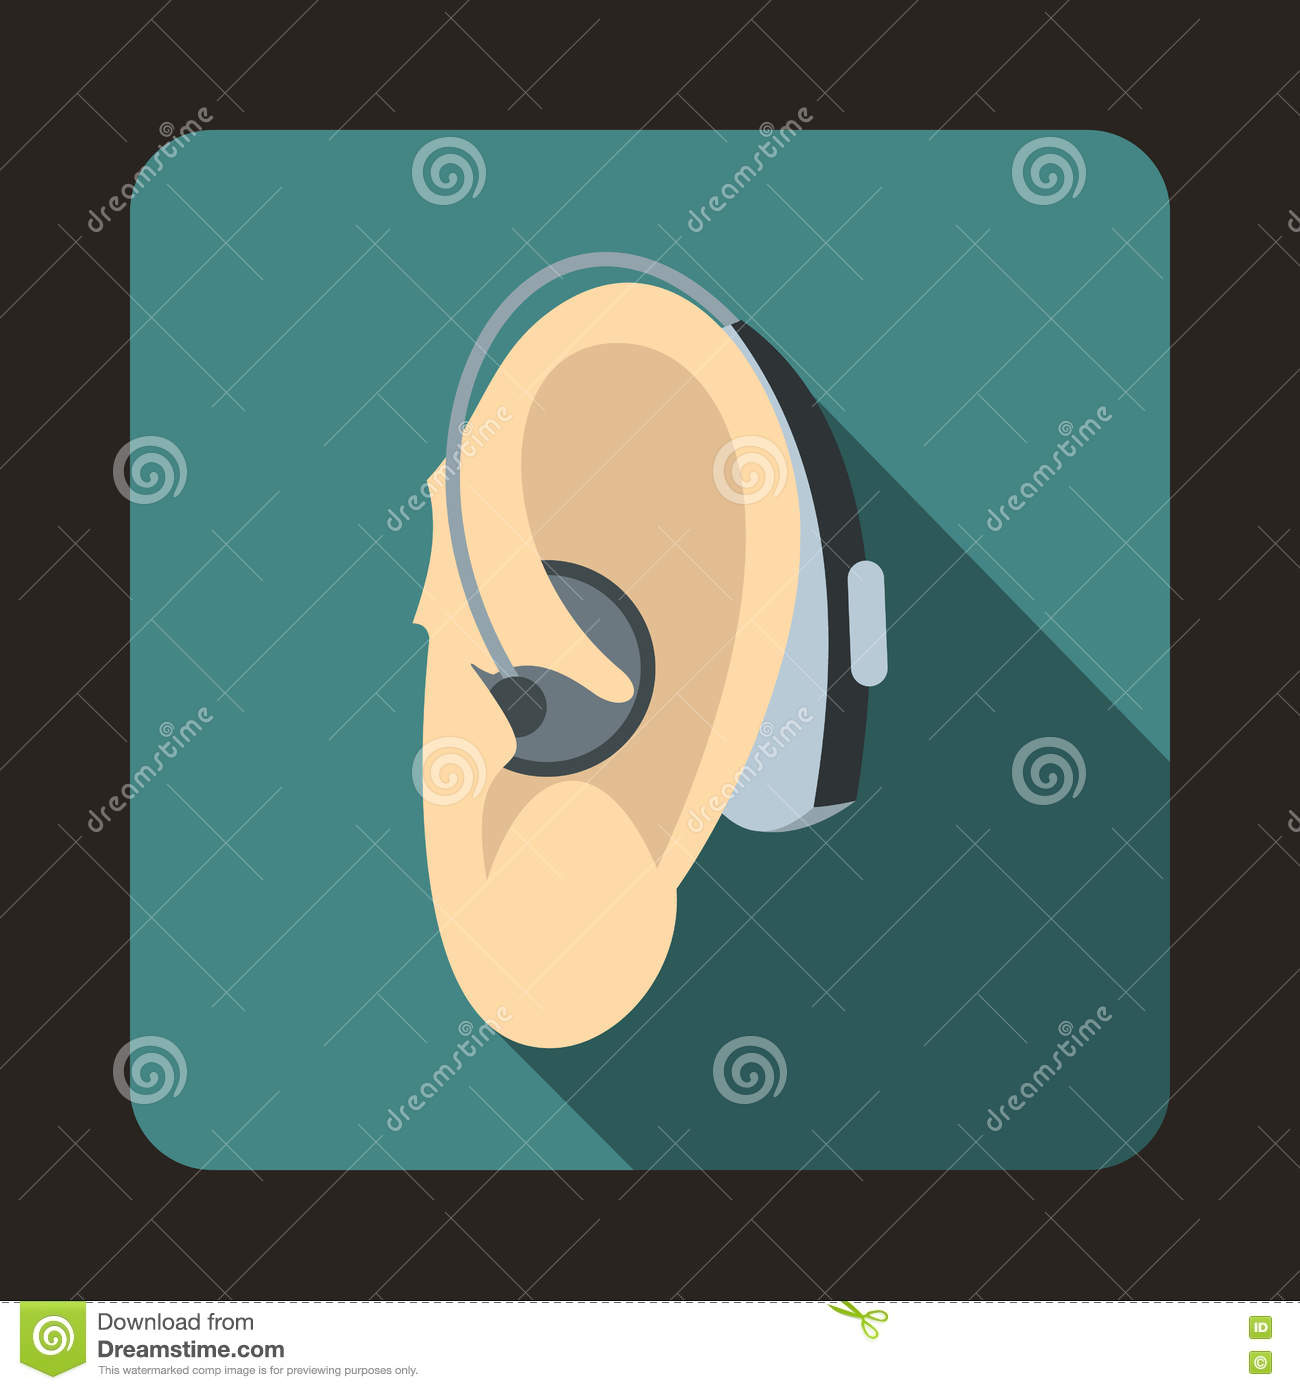 Hearing Aid Icon Flat Style Stock Vector Illustration Of Deafness